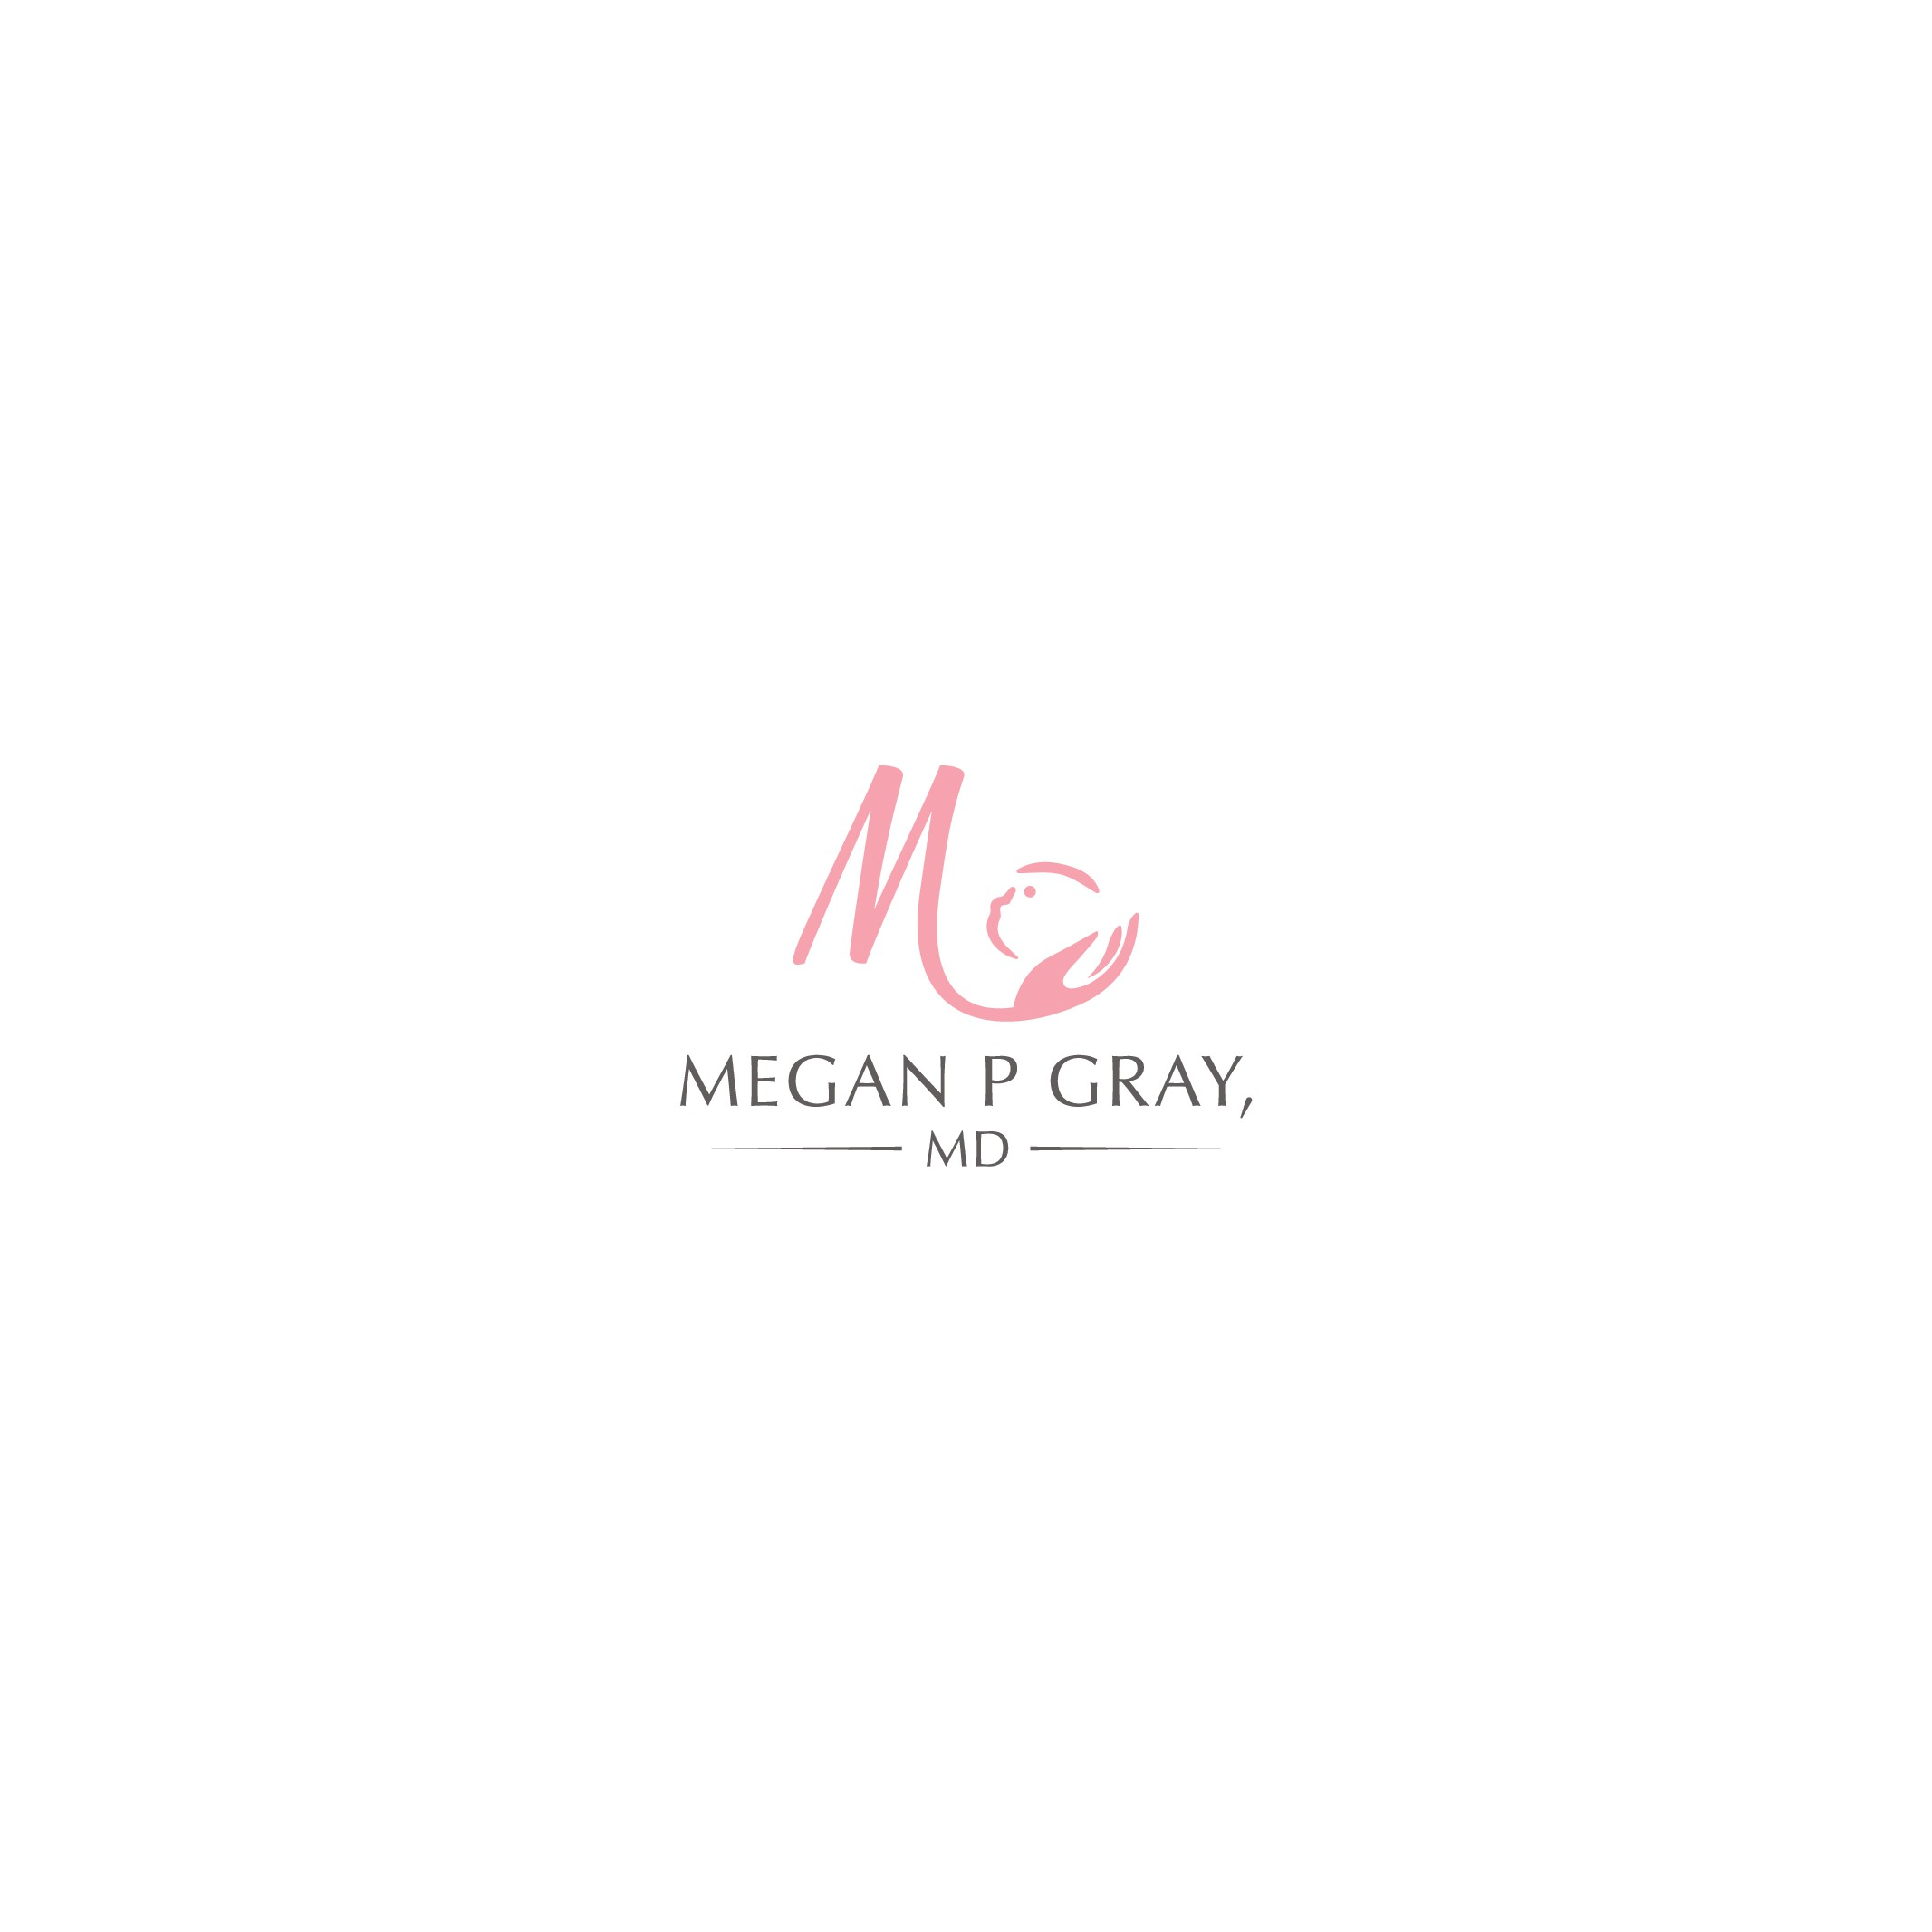 Ob/Gyn physician and new mom needs a logo for her new post baby education classes